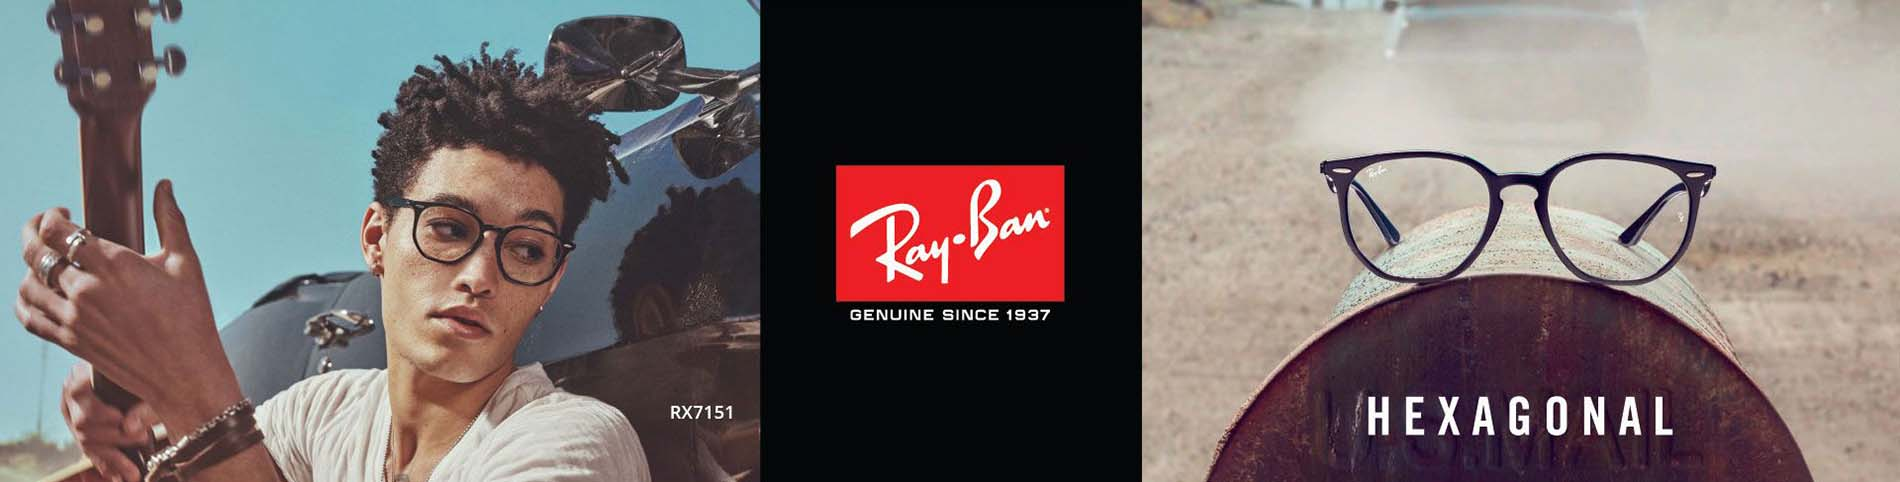 Buy Ray-Ban Glasses - Jennings Opticians